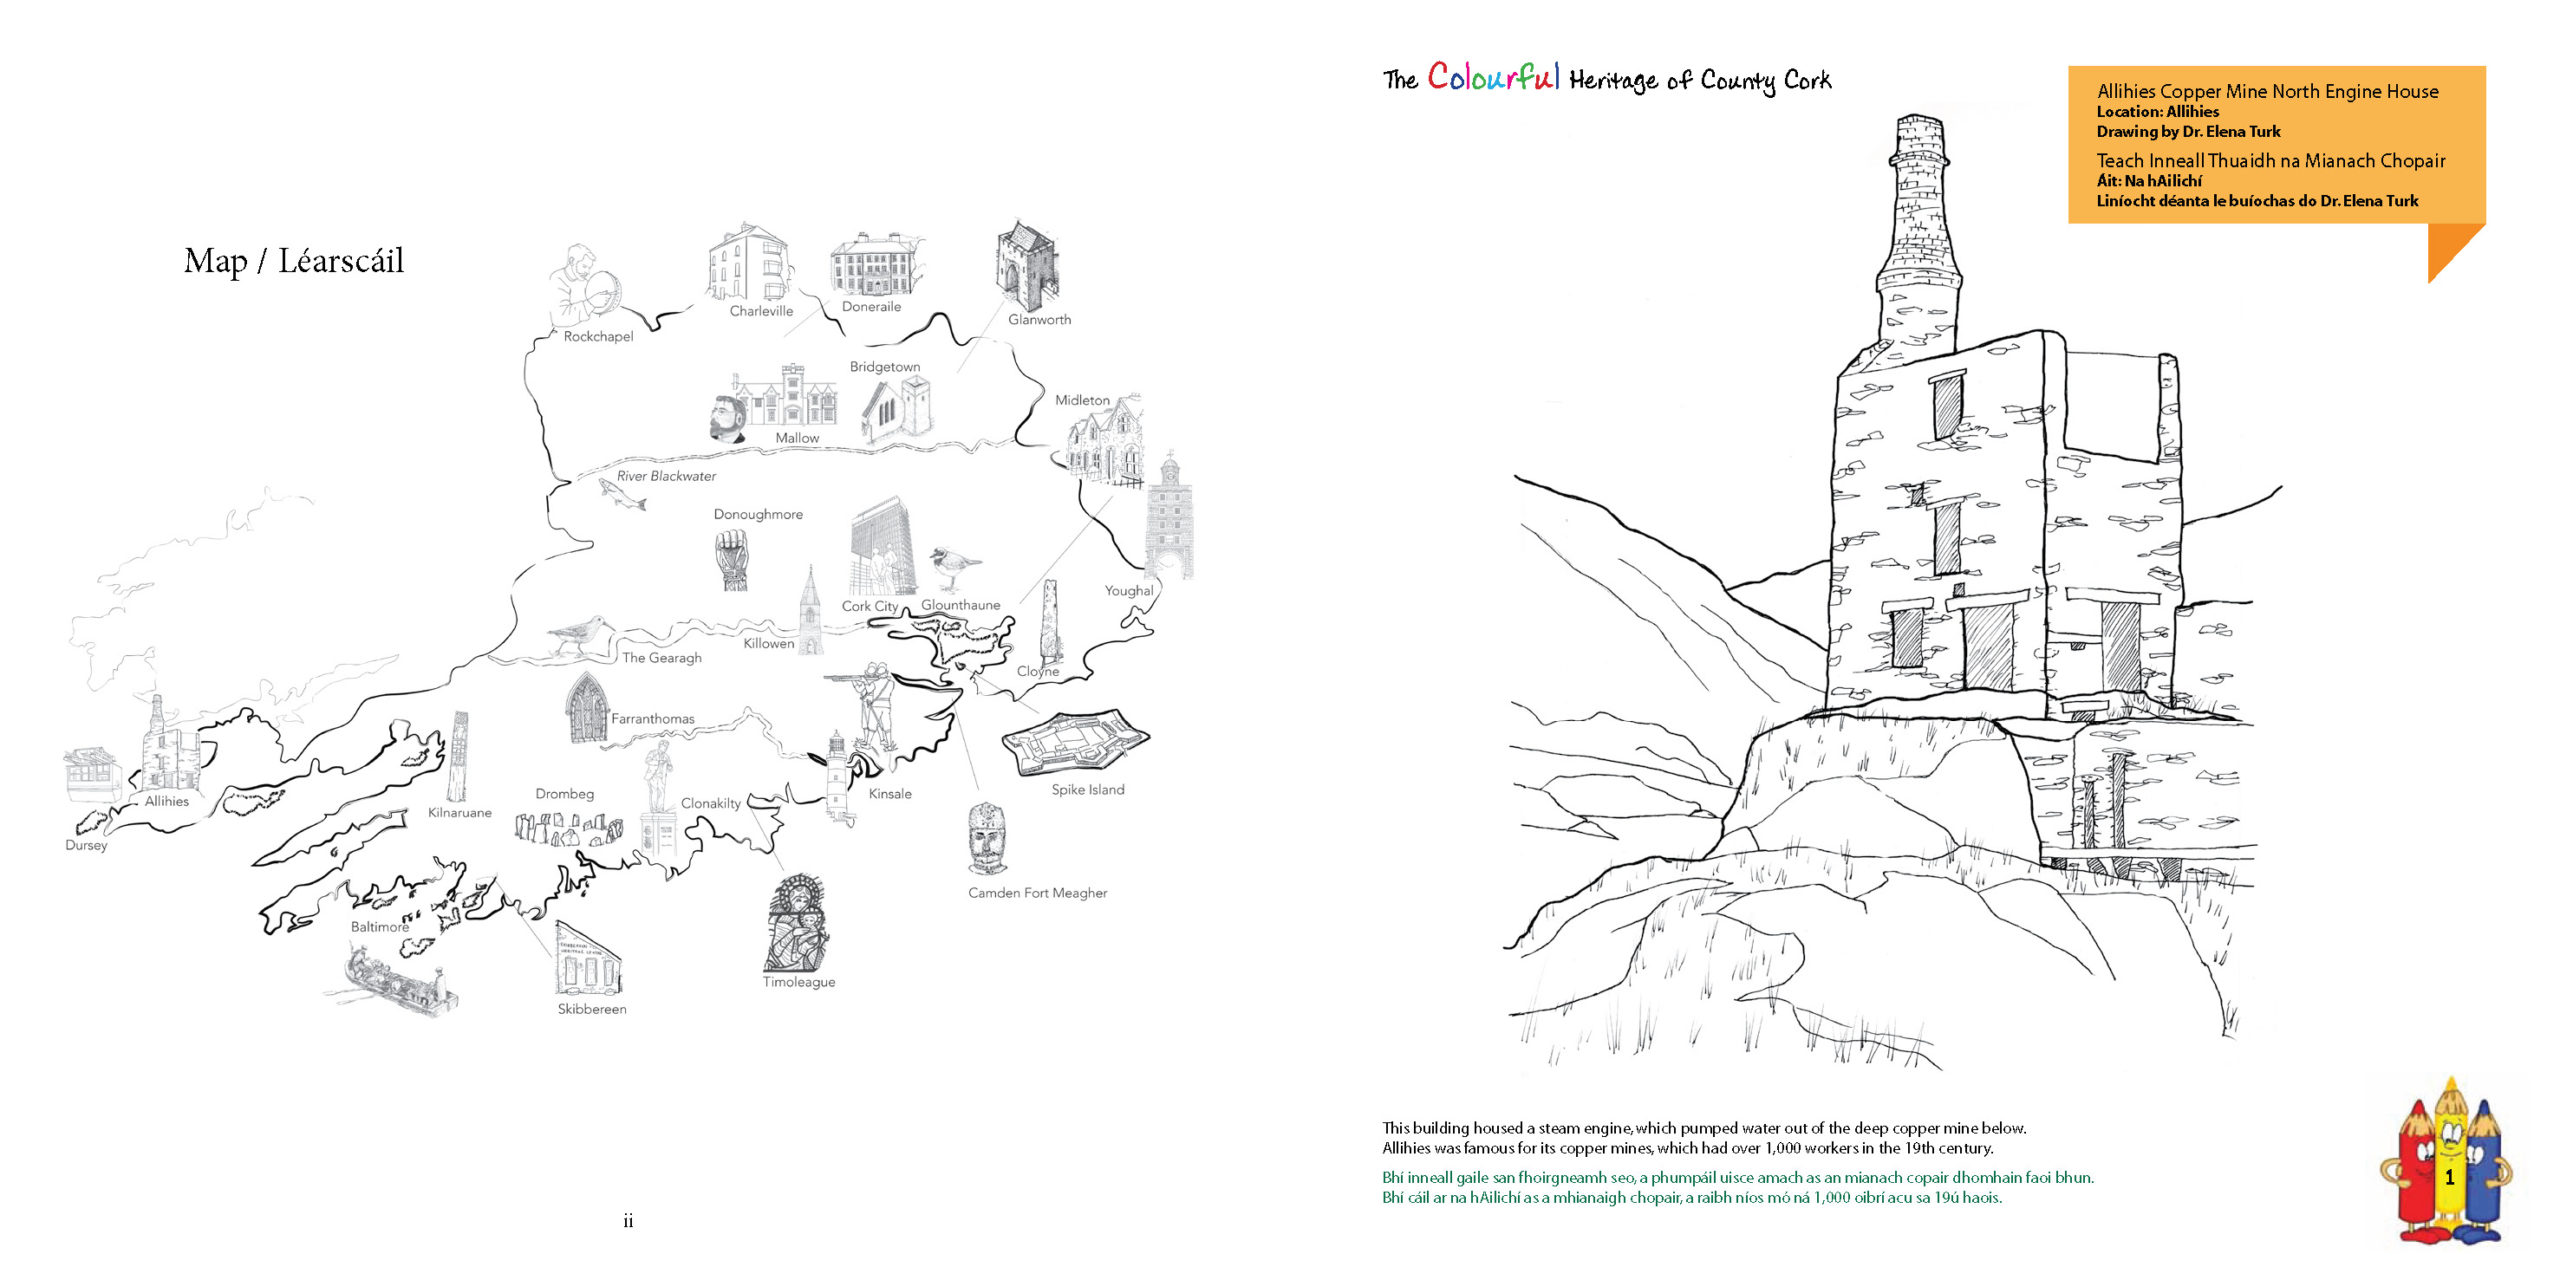 Heritage of County Cork Colouring Book Volume 2 needs you!